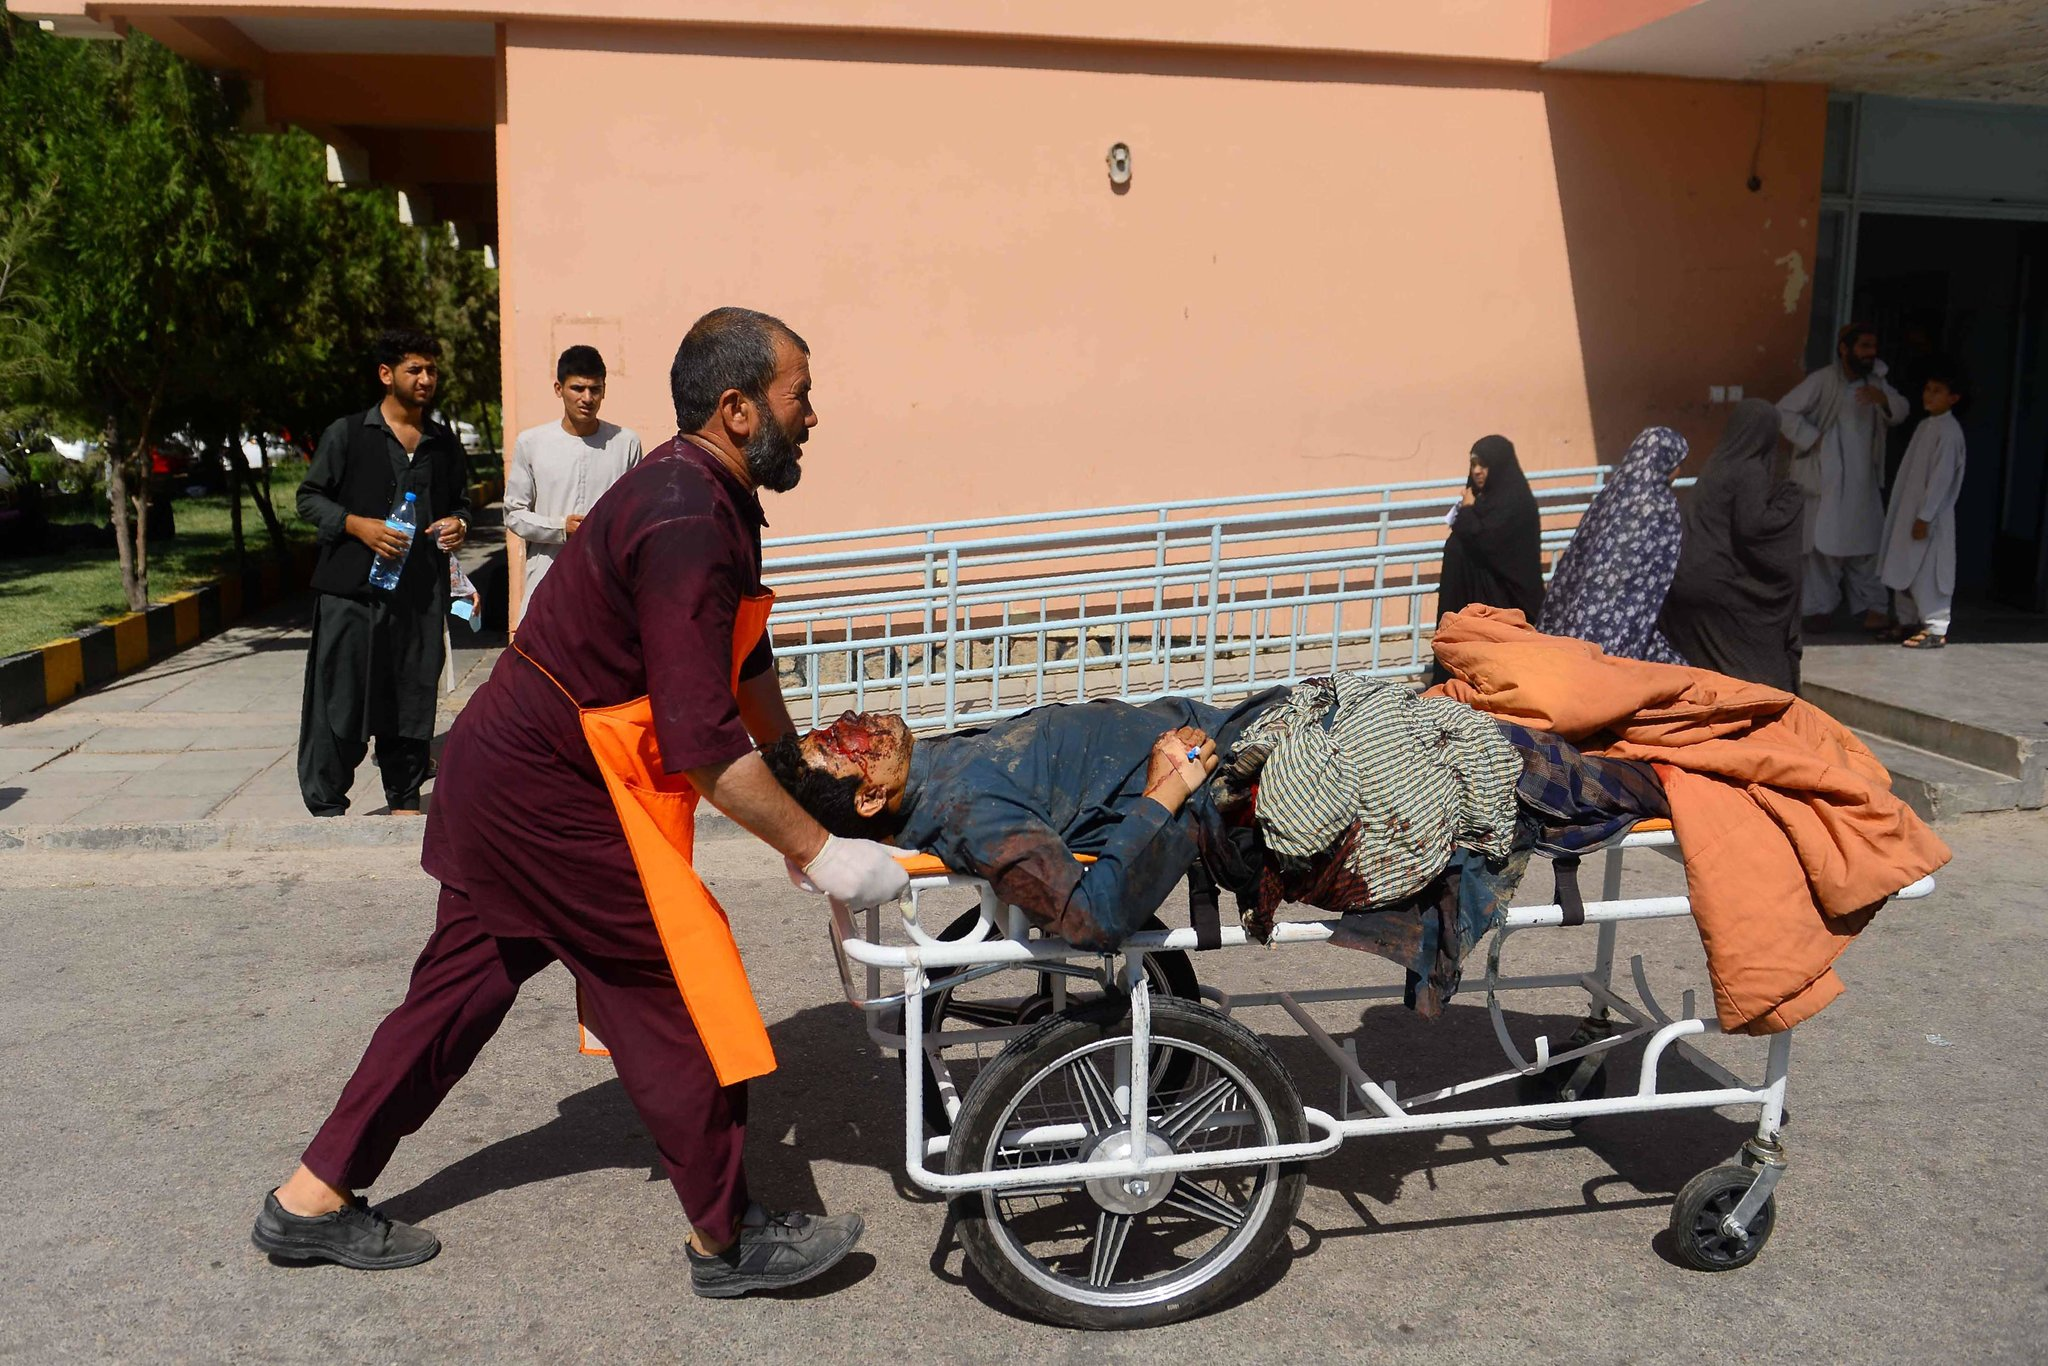 An injured man being transported on a stretcher on Wednesday after a bus hit a roadside bomb on the highway between the Afghan cities of Kandahar and Herat. Credit Hoshang Hashimi/Agence France-Presse — Getty Images